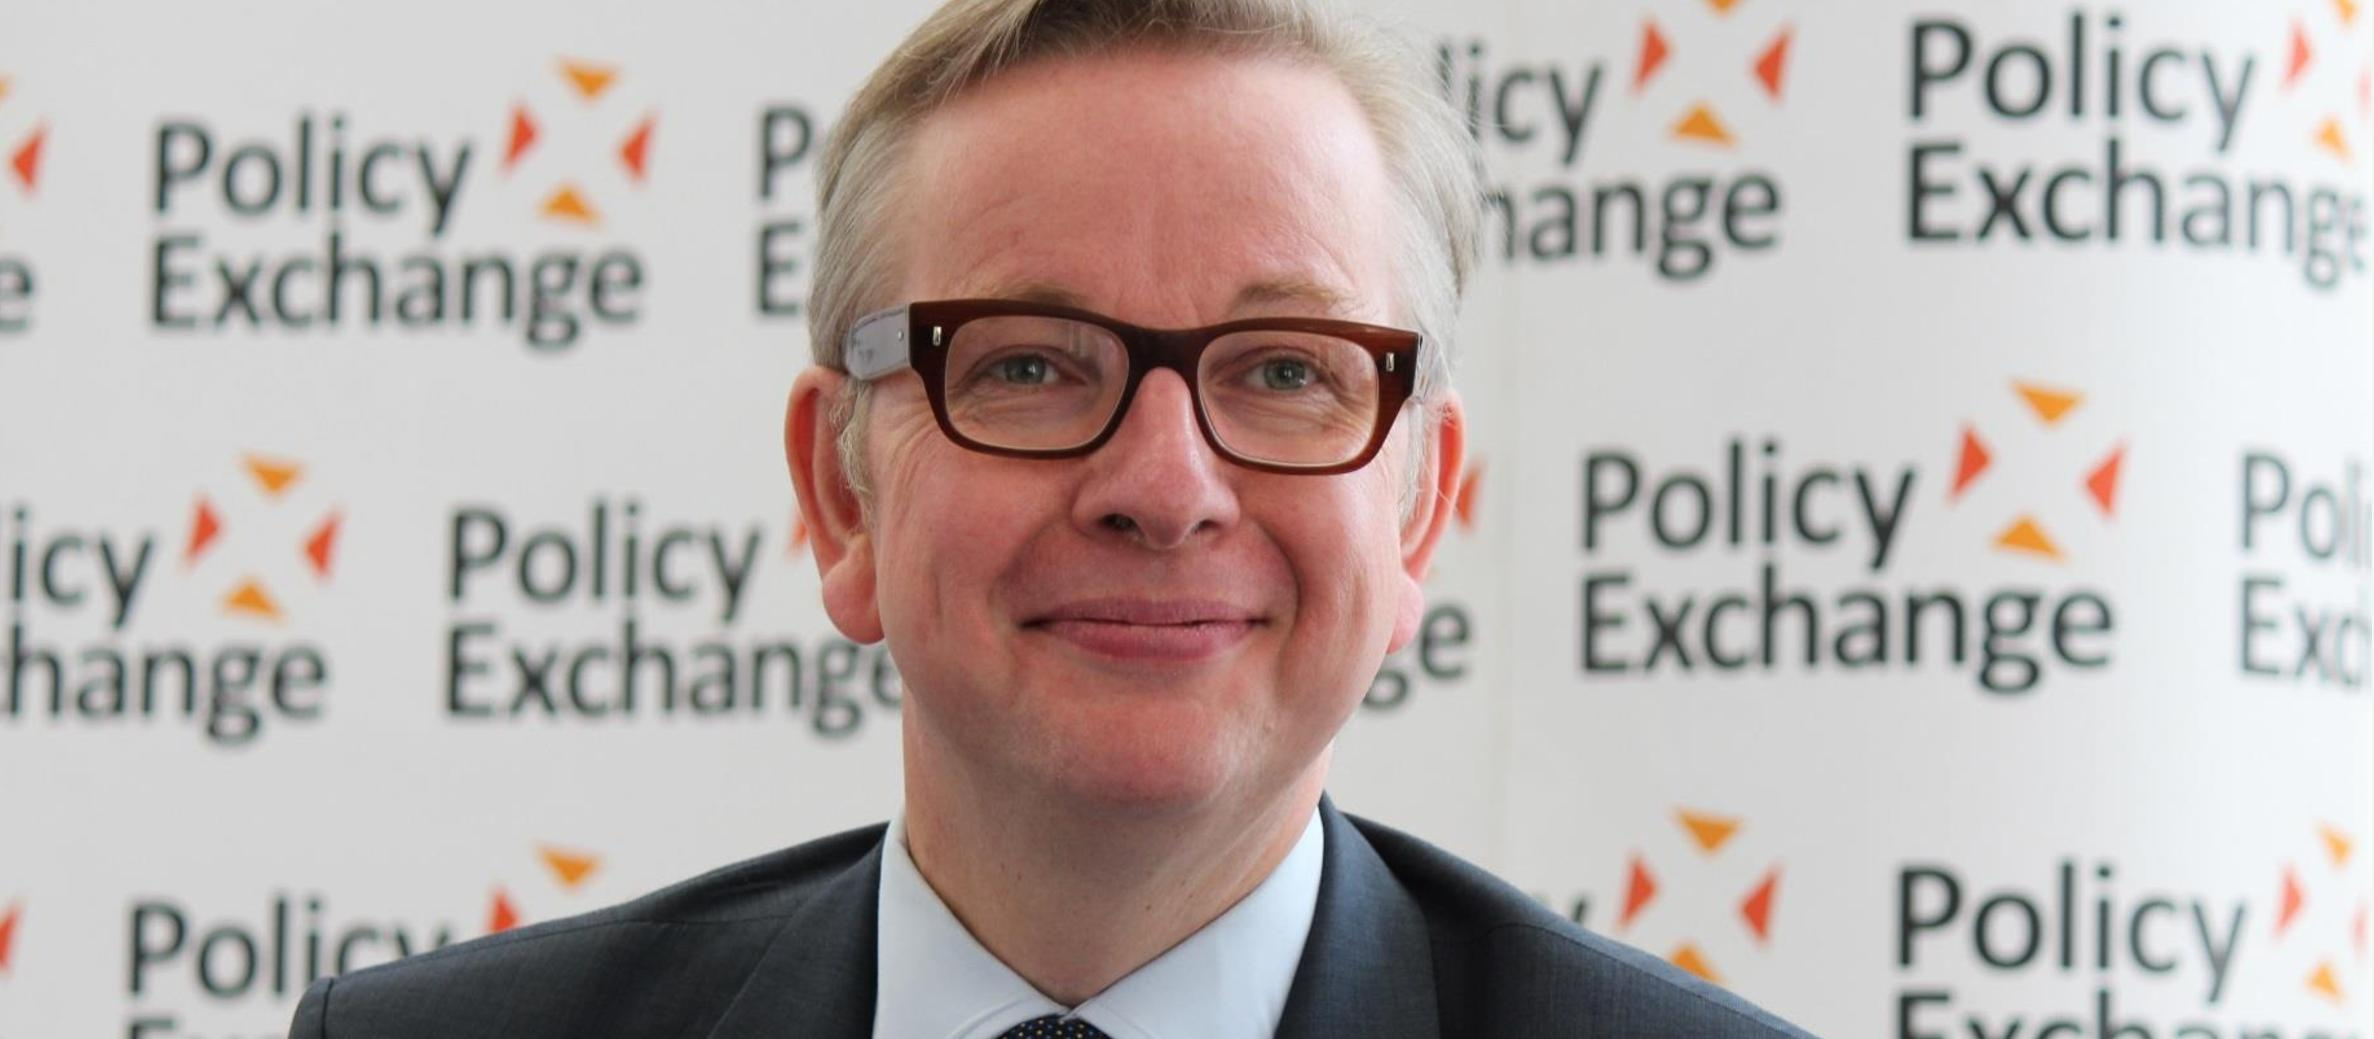 Boycotting Israel is an attack on the Jewish right to National Sovereignty, says Michael Gove